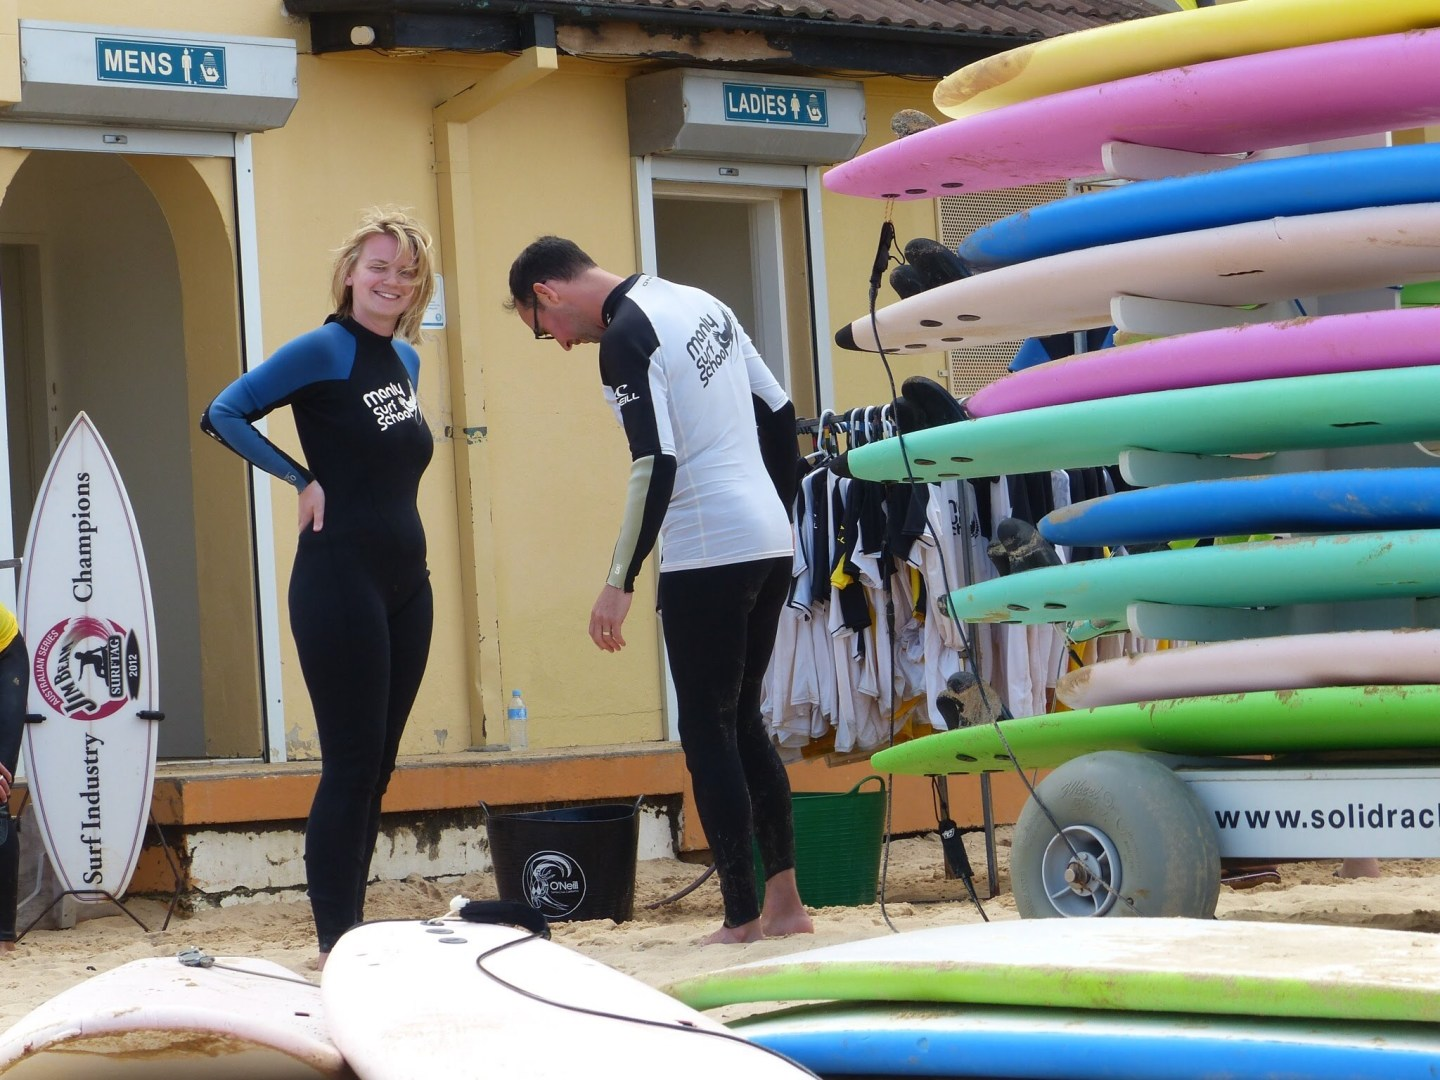 Wetsuits and surfboards at Manly Surf School, Sydney